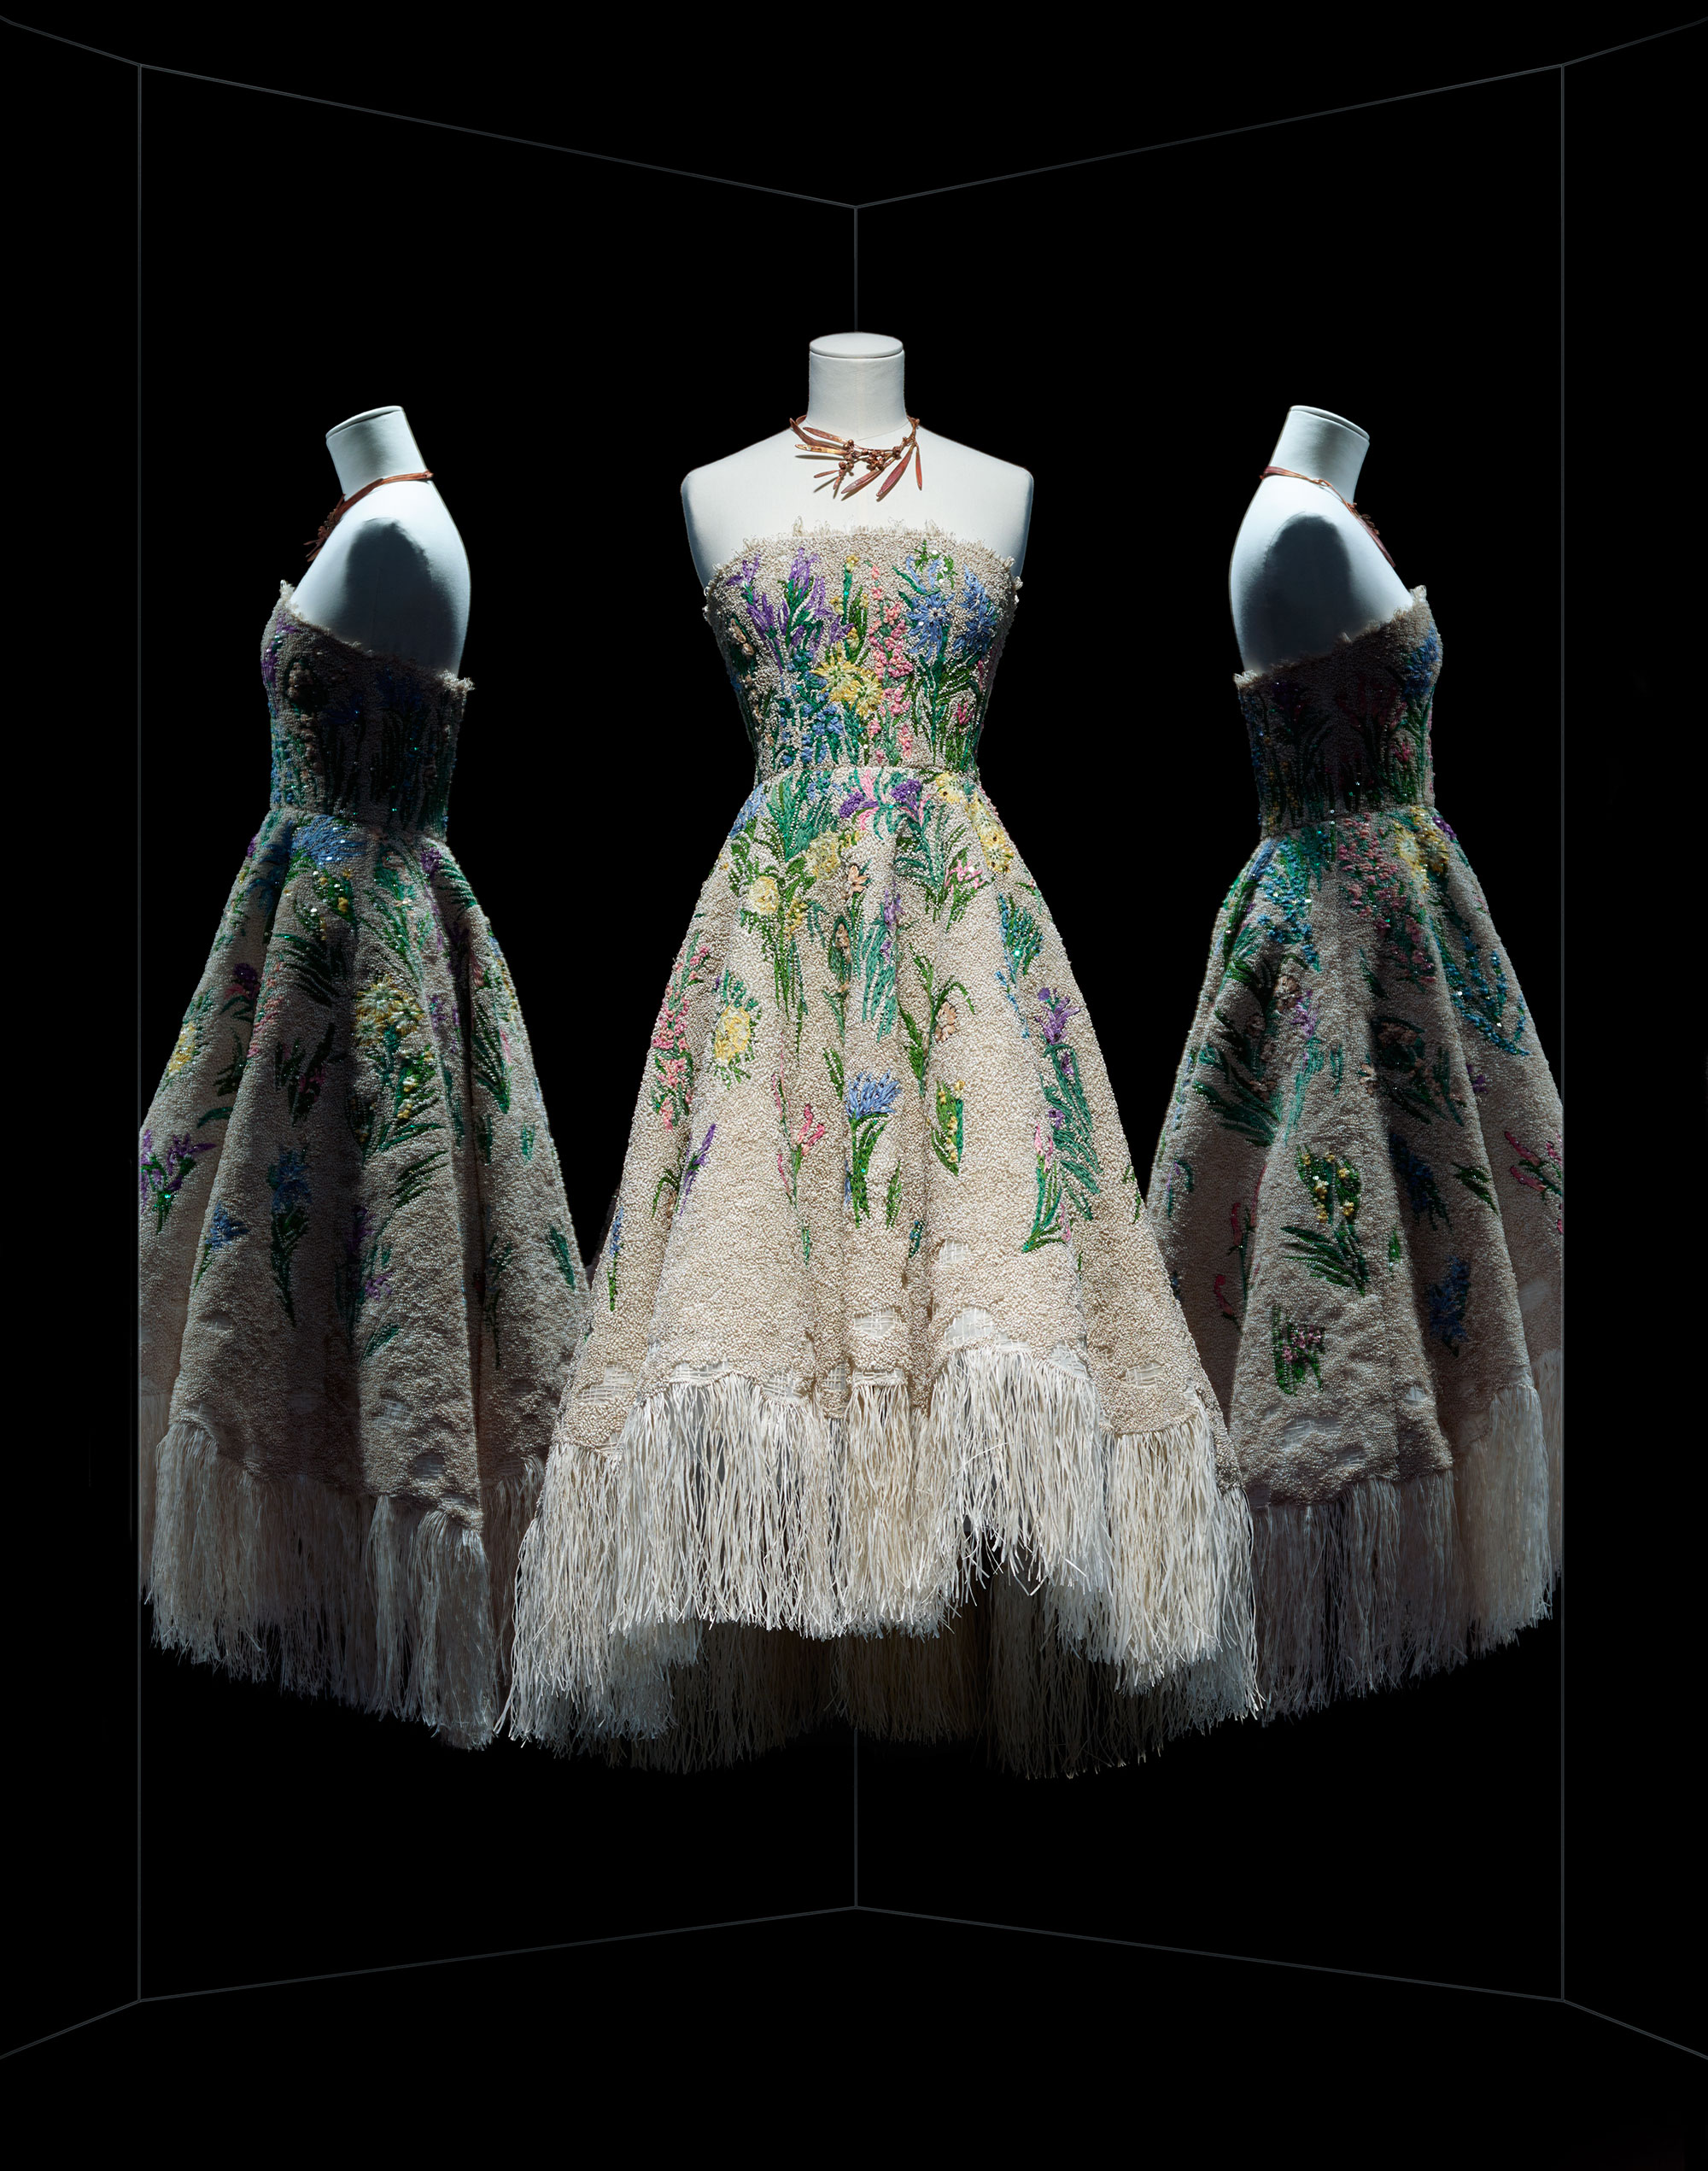 ... d herbier cocktail dress, Haute Couture, Spring-Summer 2017 Ecru fringe  cocktail dress, floral raffia and thread embroidery adomed with Swarovski  ... a9eea6e84208